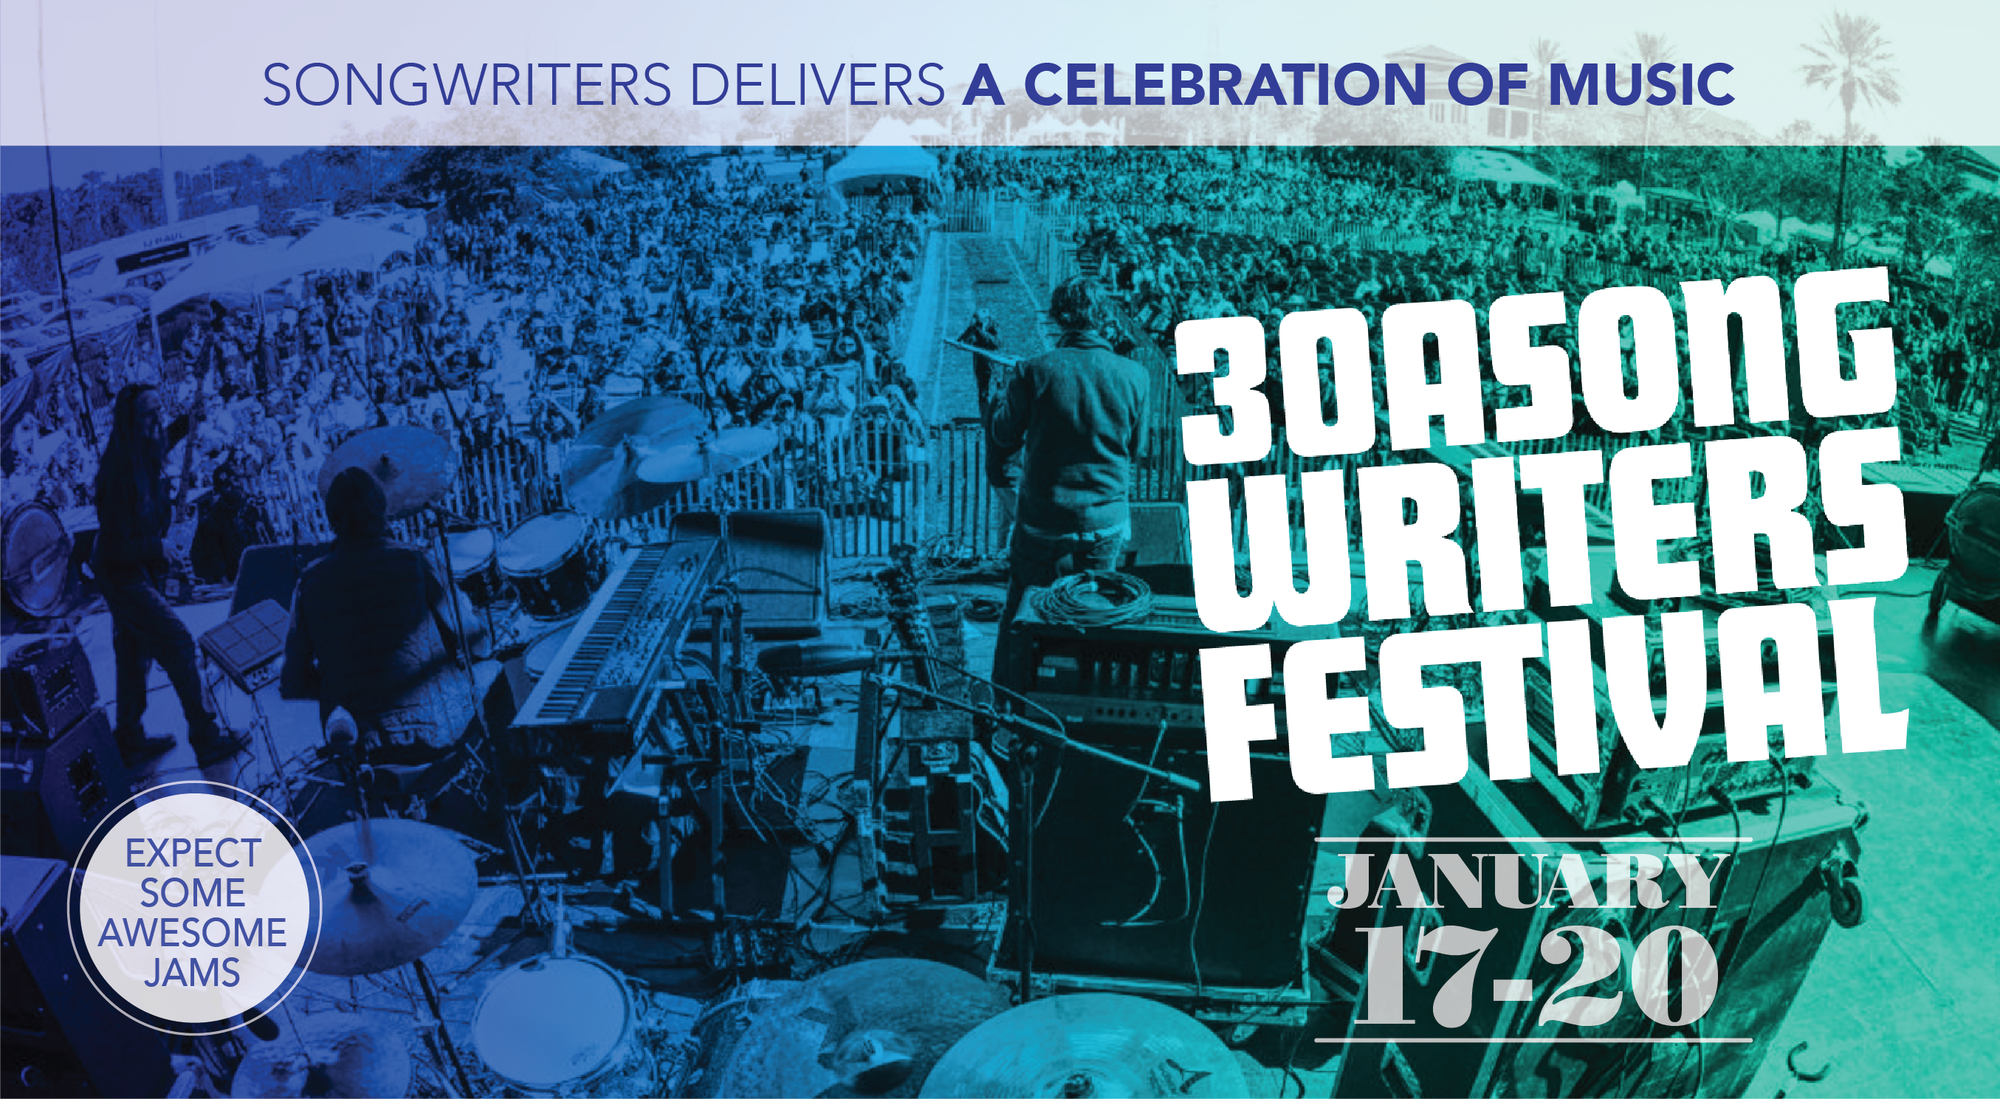 A Celebration of Music jan 2020 Songwriters Header